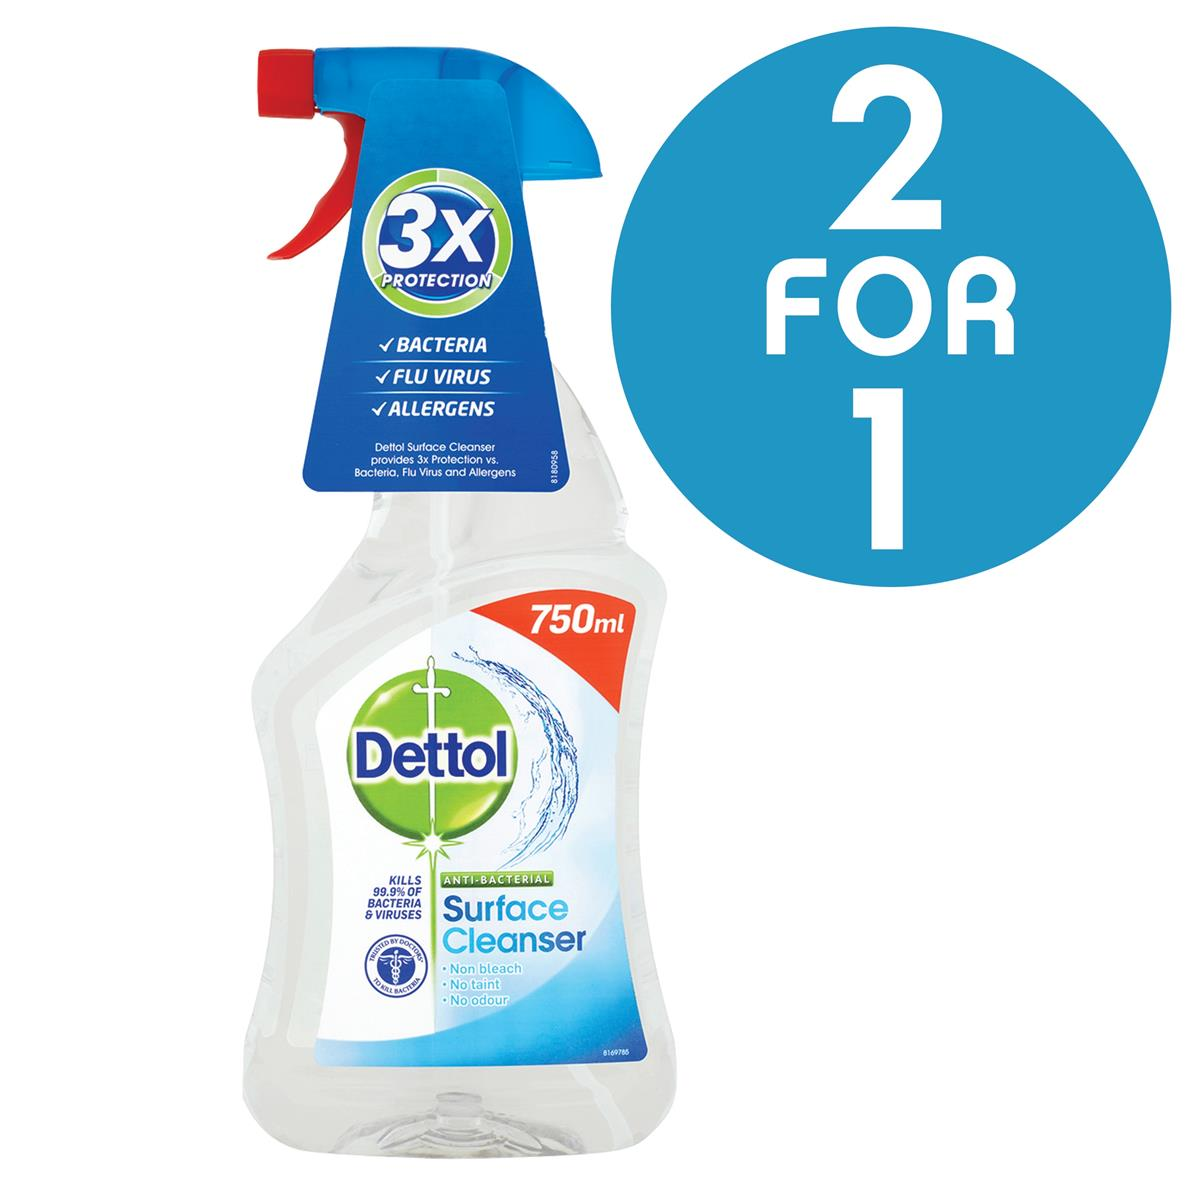 Dettol Surface Cleanser Spray 750ml Ref 14781 [2 For 1] Jan 2018